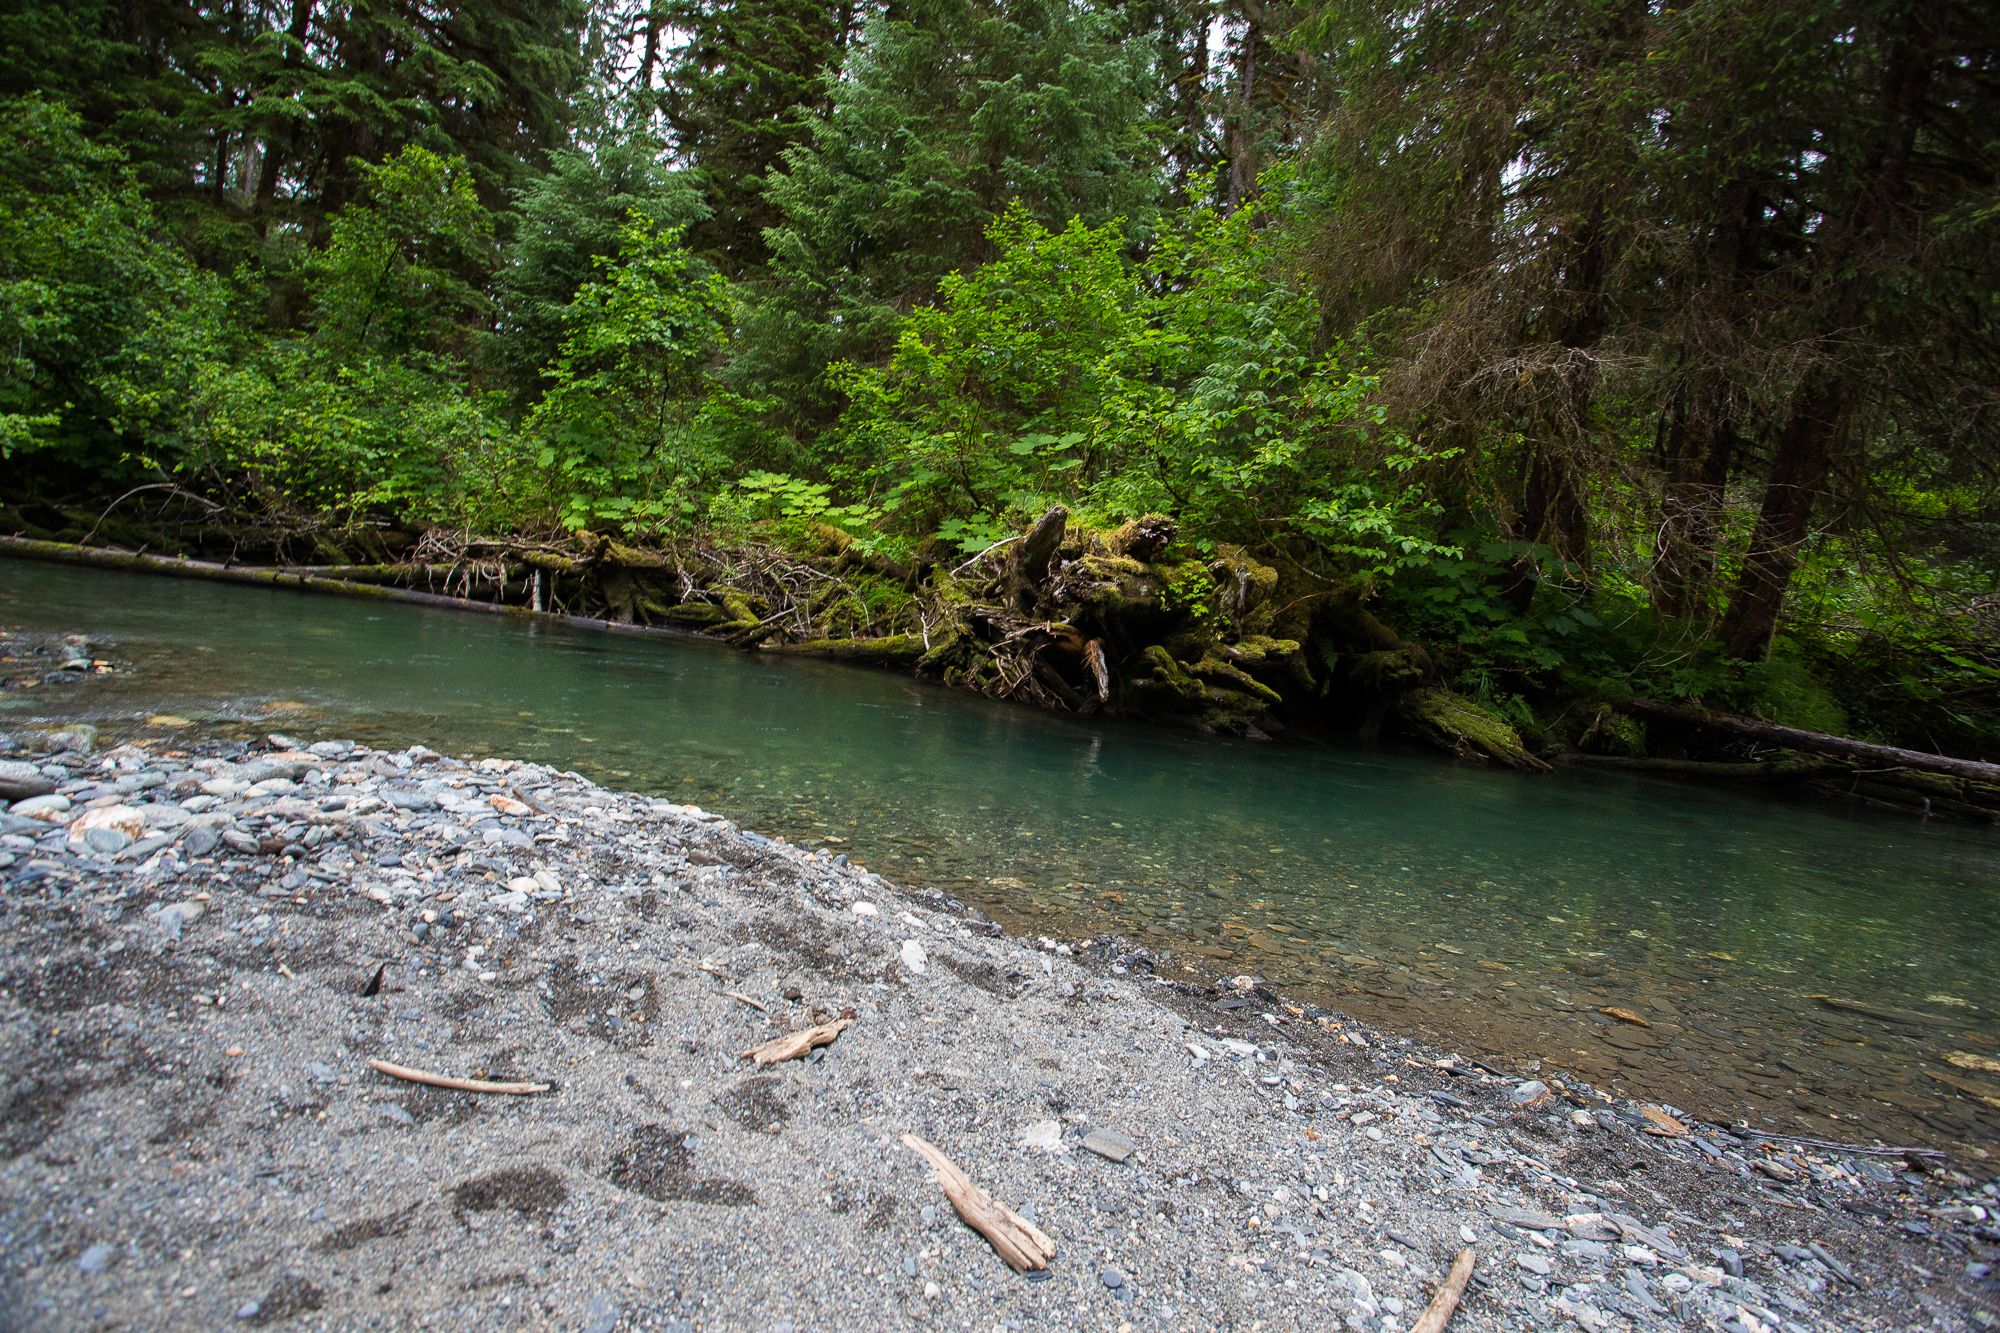 (3/3) Coursing through the Juneau town limits is Montana Creek, a clearwater tributary to the Mendenhall River. Montana Creek offers outstanding fishing for coho, chum and pink salmon, dolly varden and even steelhead. Montana Creek, despite being located in very close proximity to fairly densely developed recreational areas, remains undeveloped and pristine (photo: Chad Shmukler).